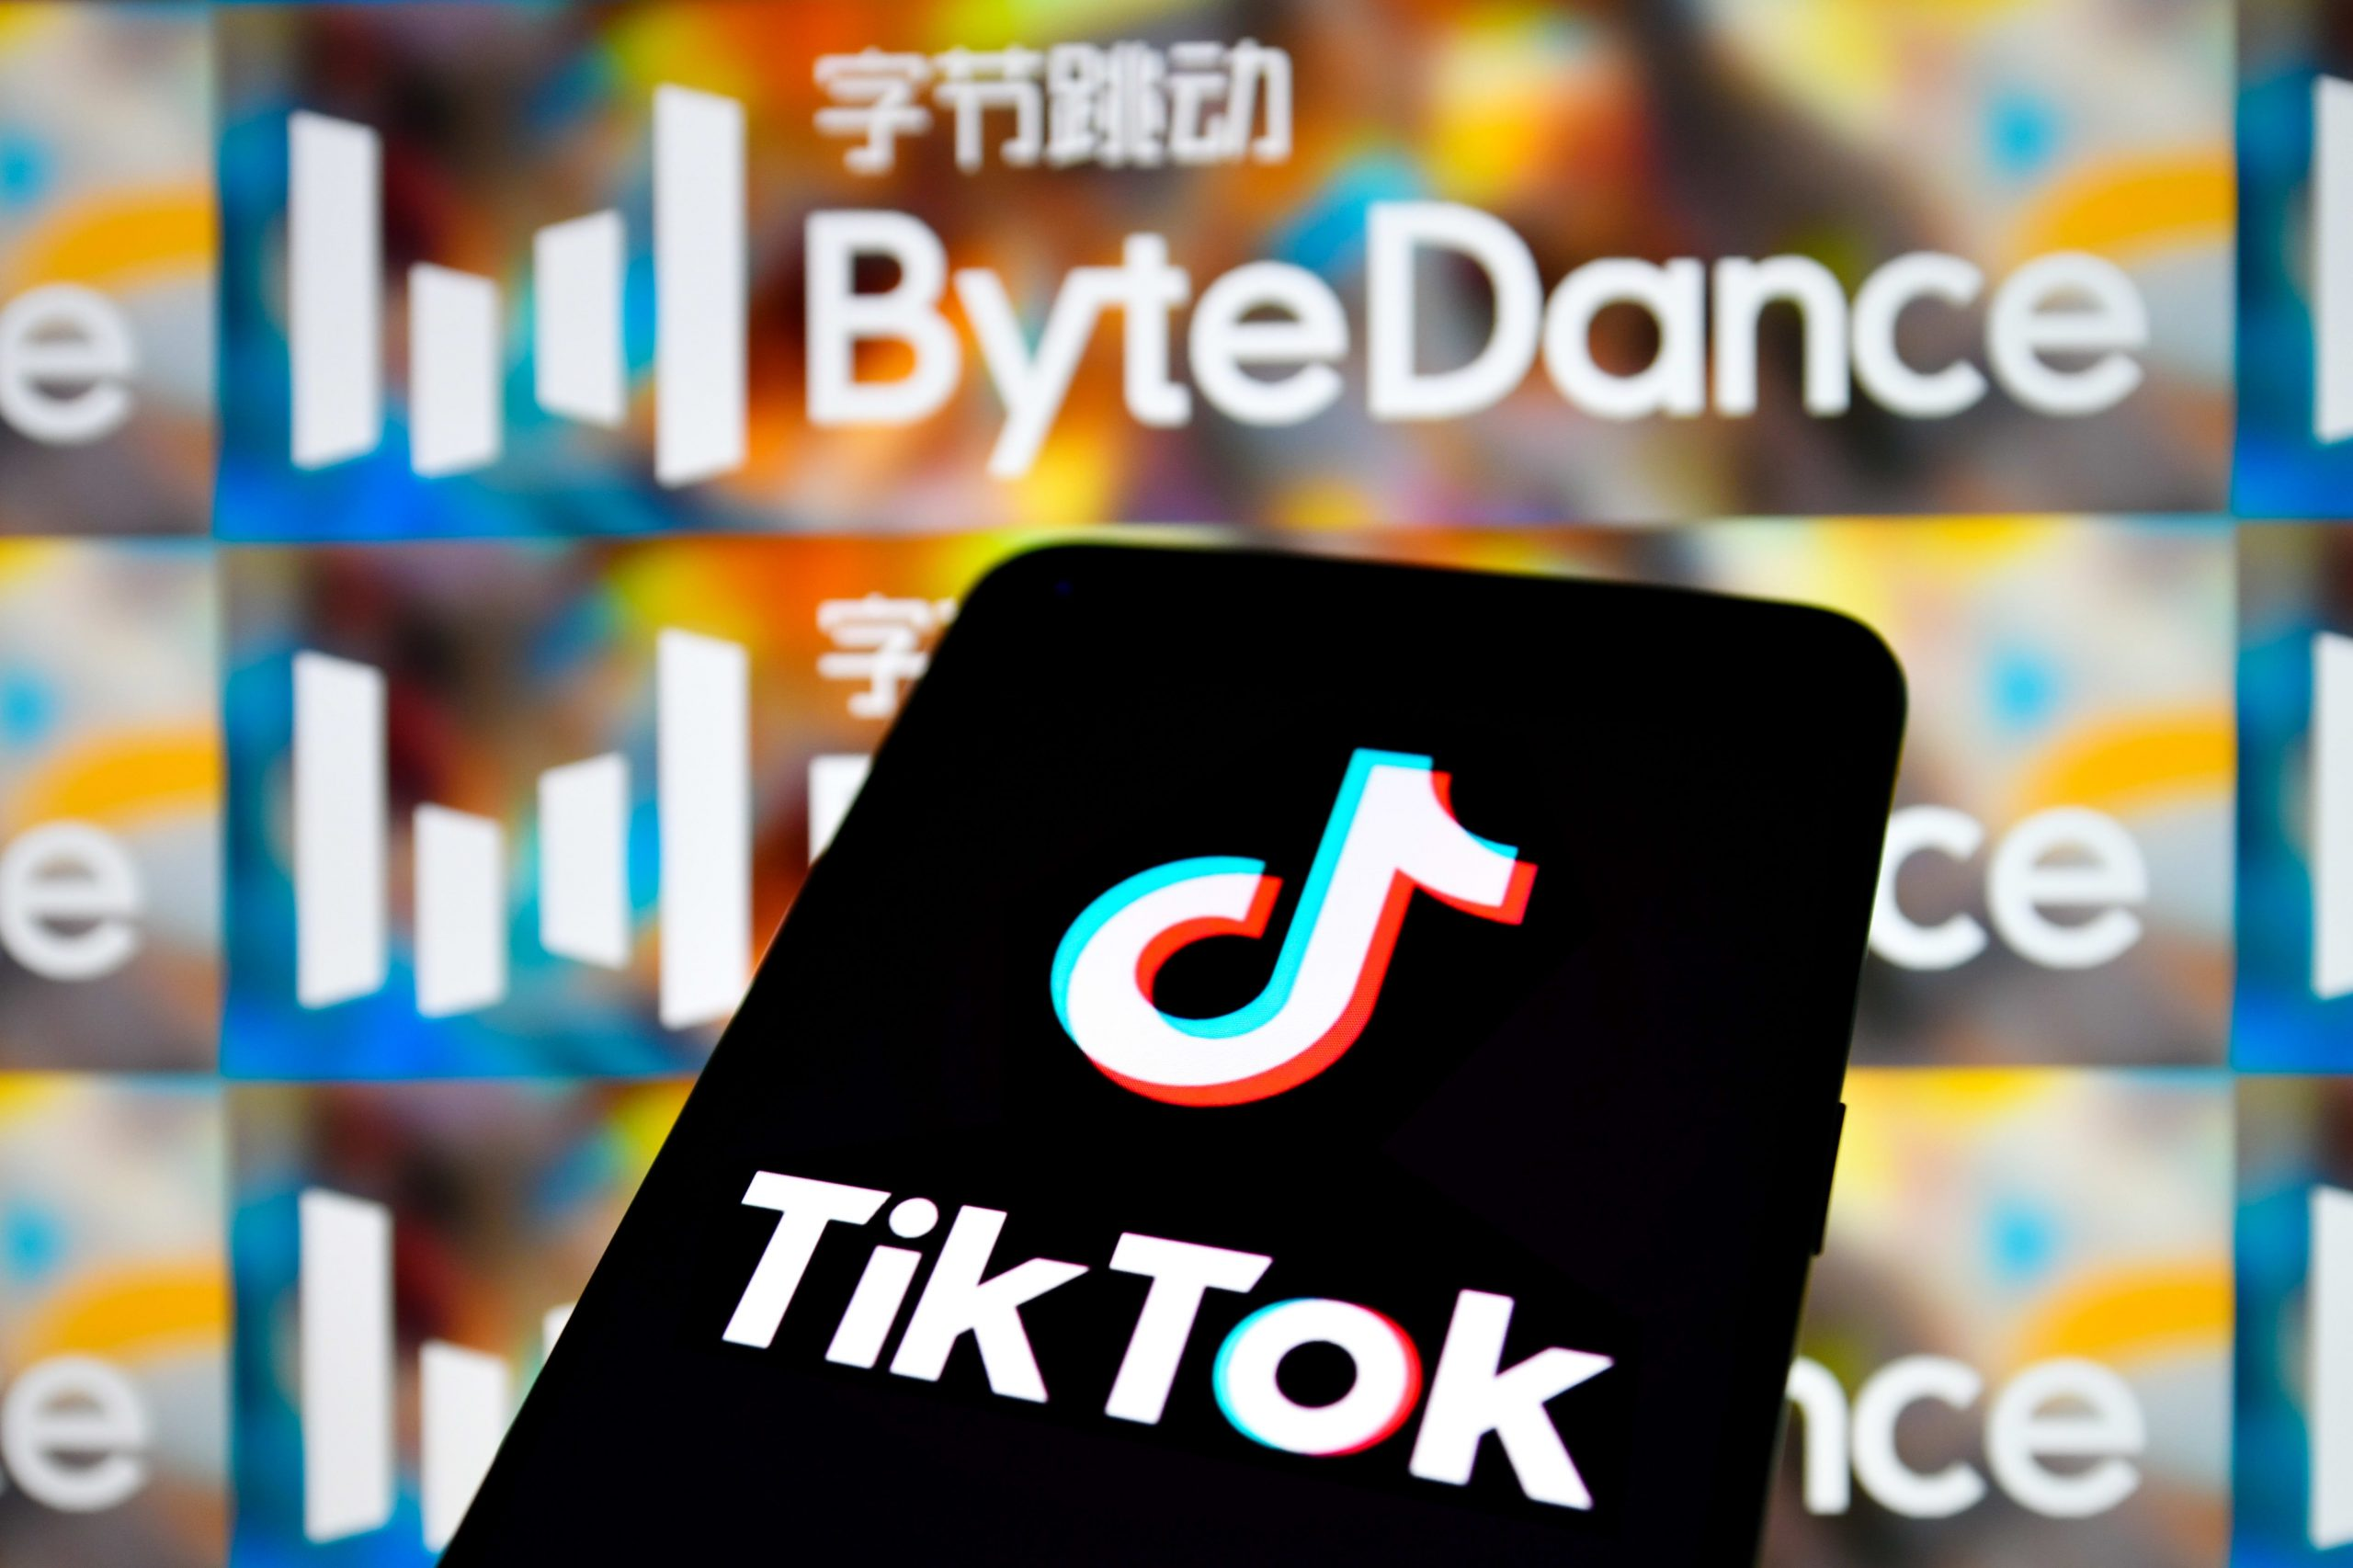 bytedance-says-it-will-abide-by-tightened-china-export-laws-as-tiktok-sale-looms